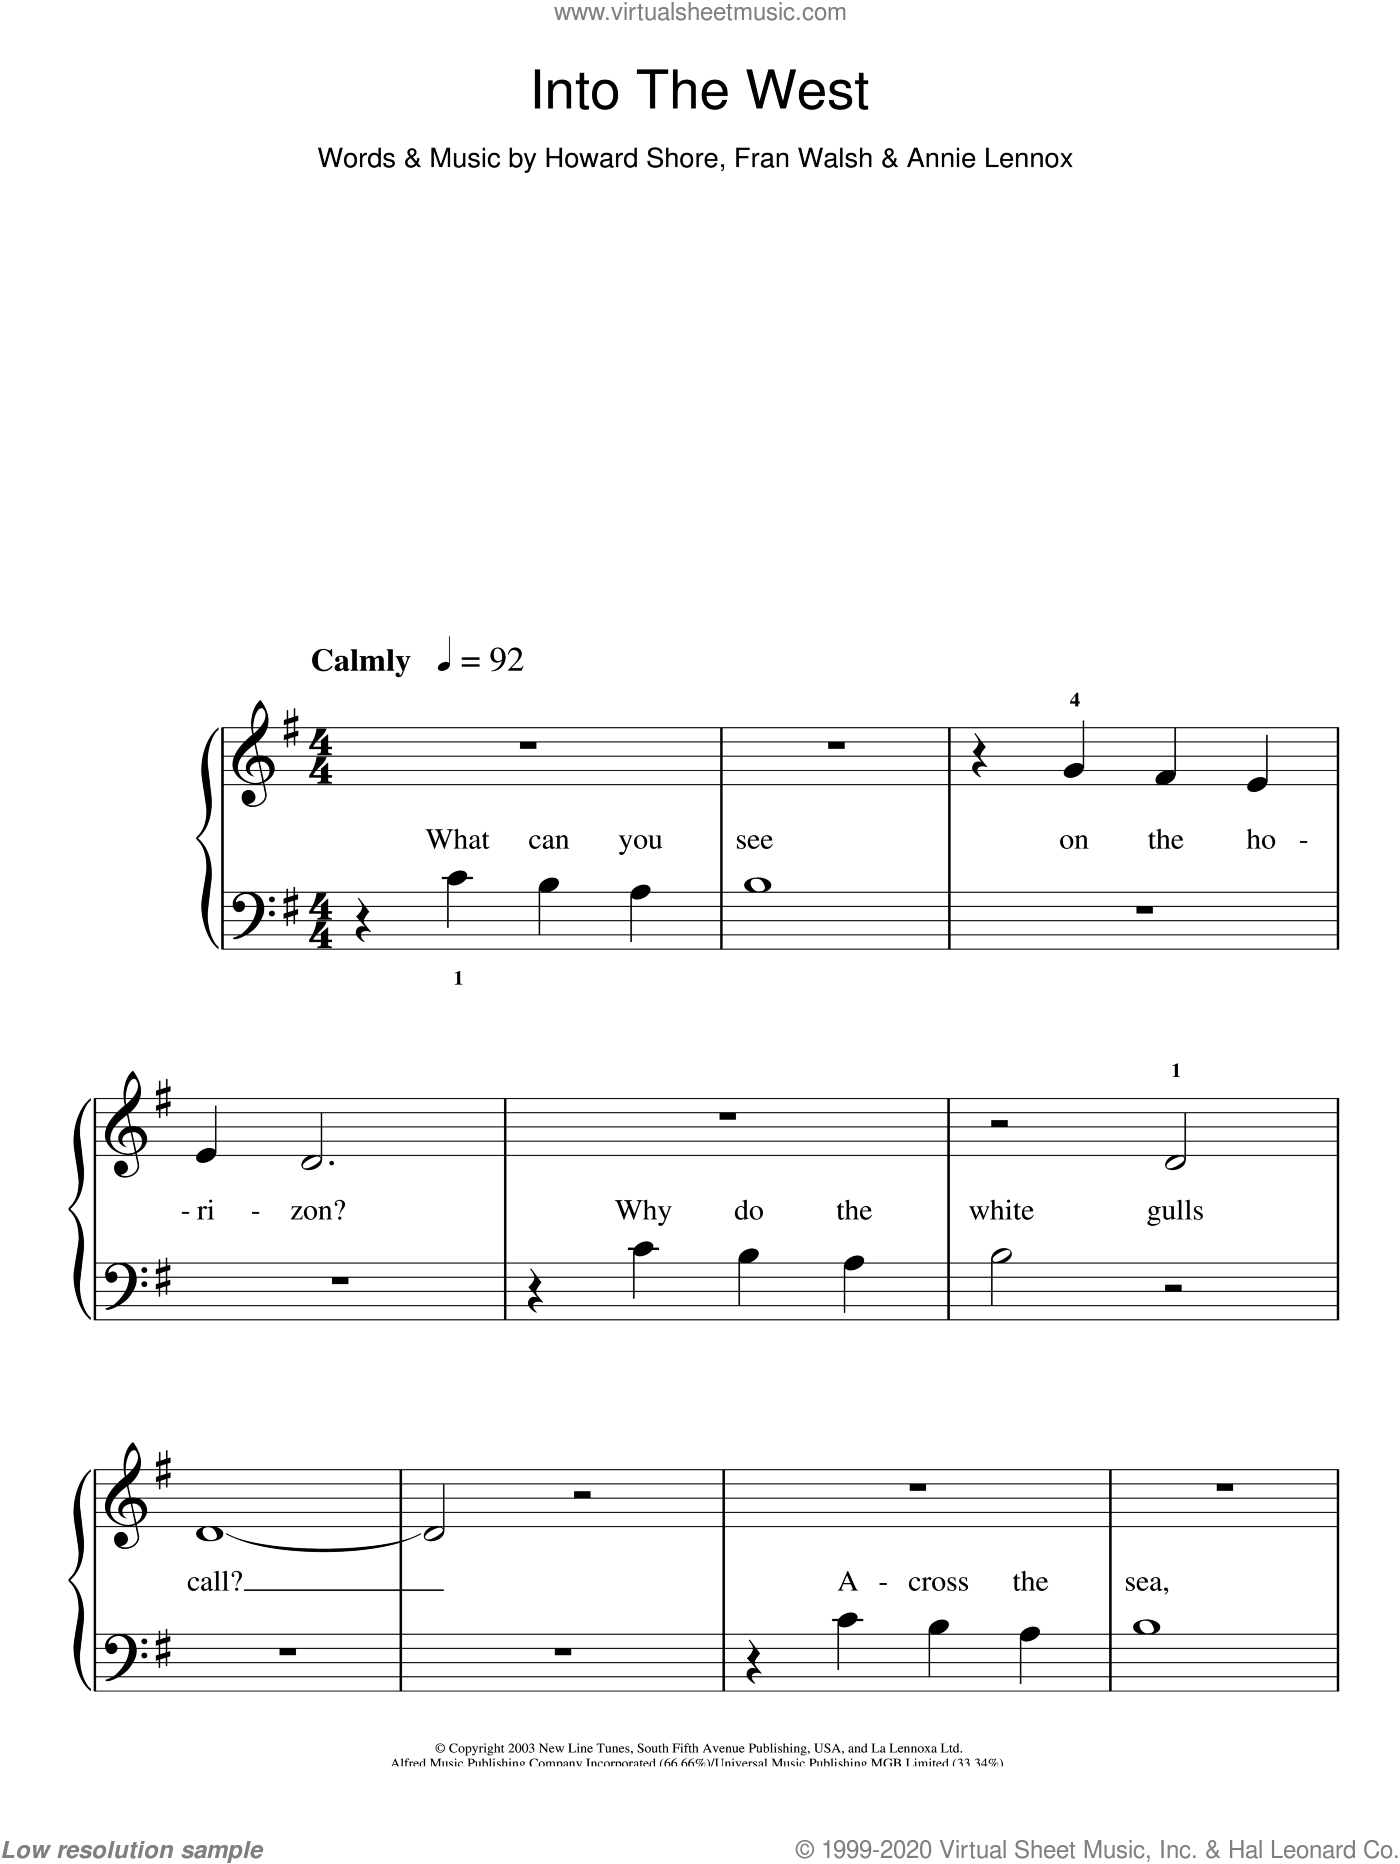 Into The West sheet music for piano solo (chords) by Howard Shore